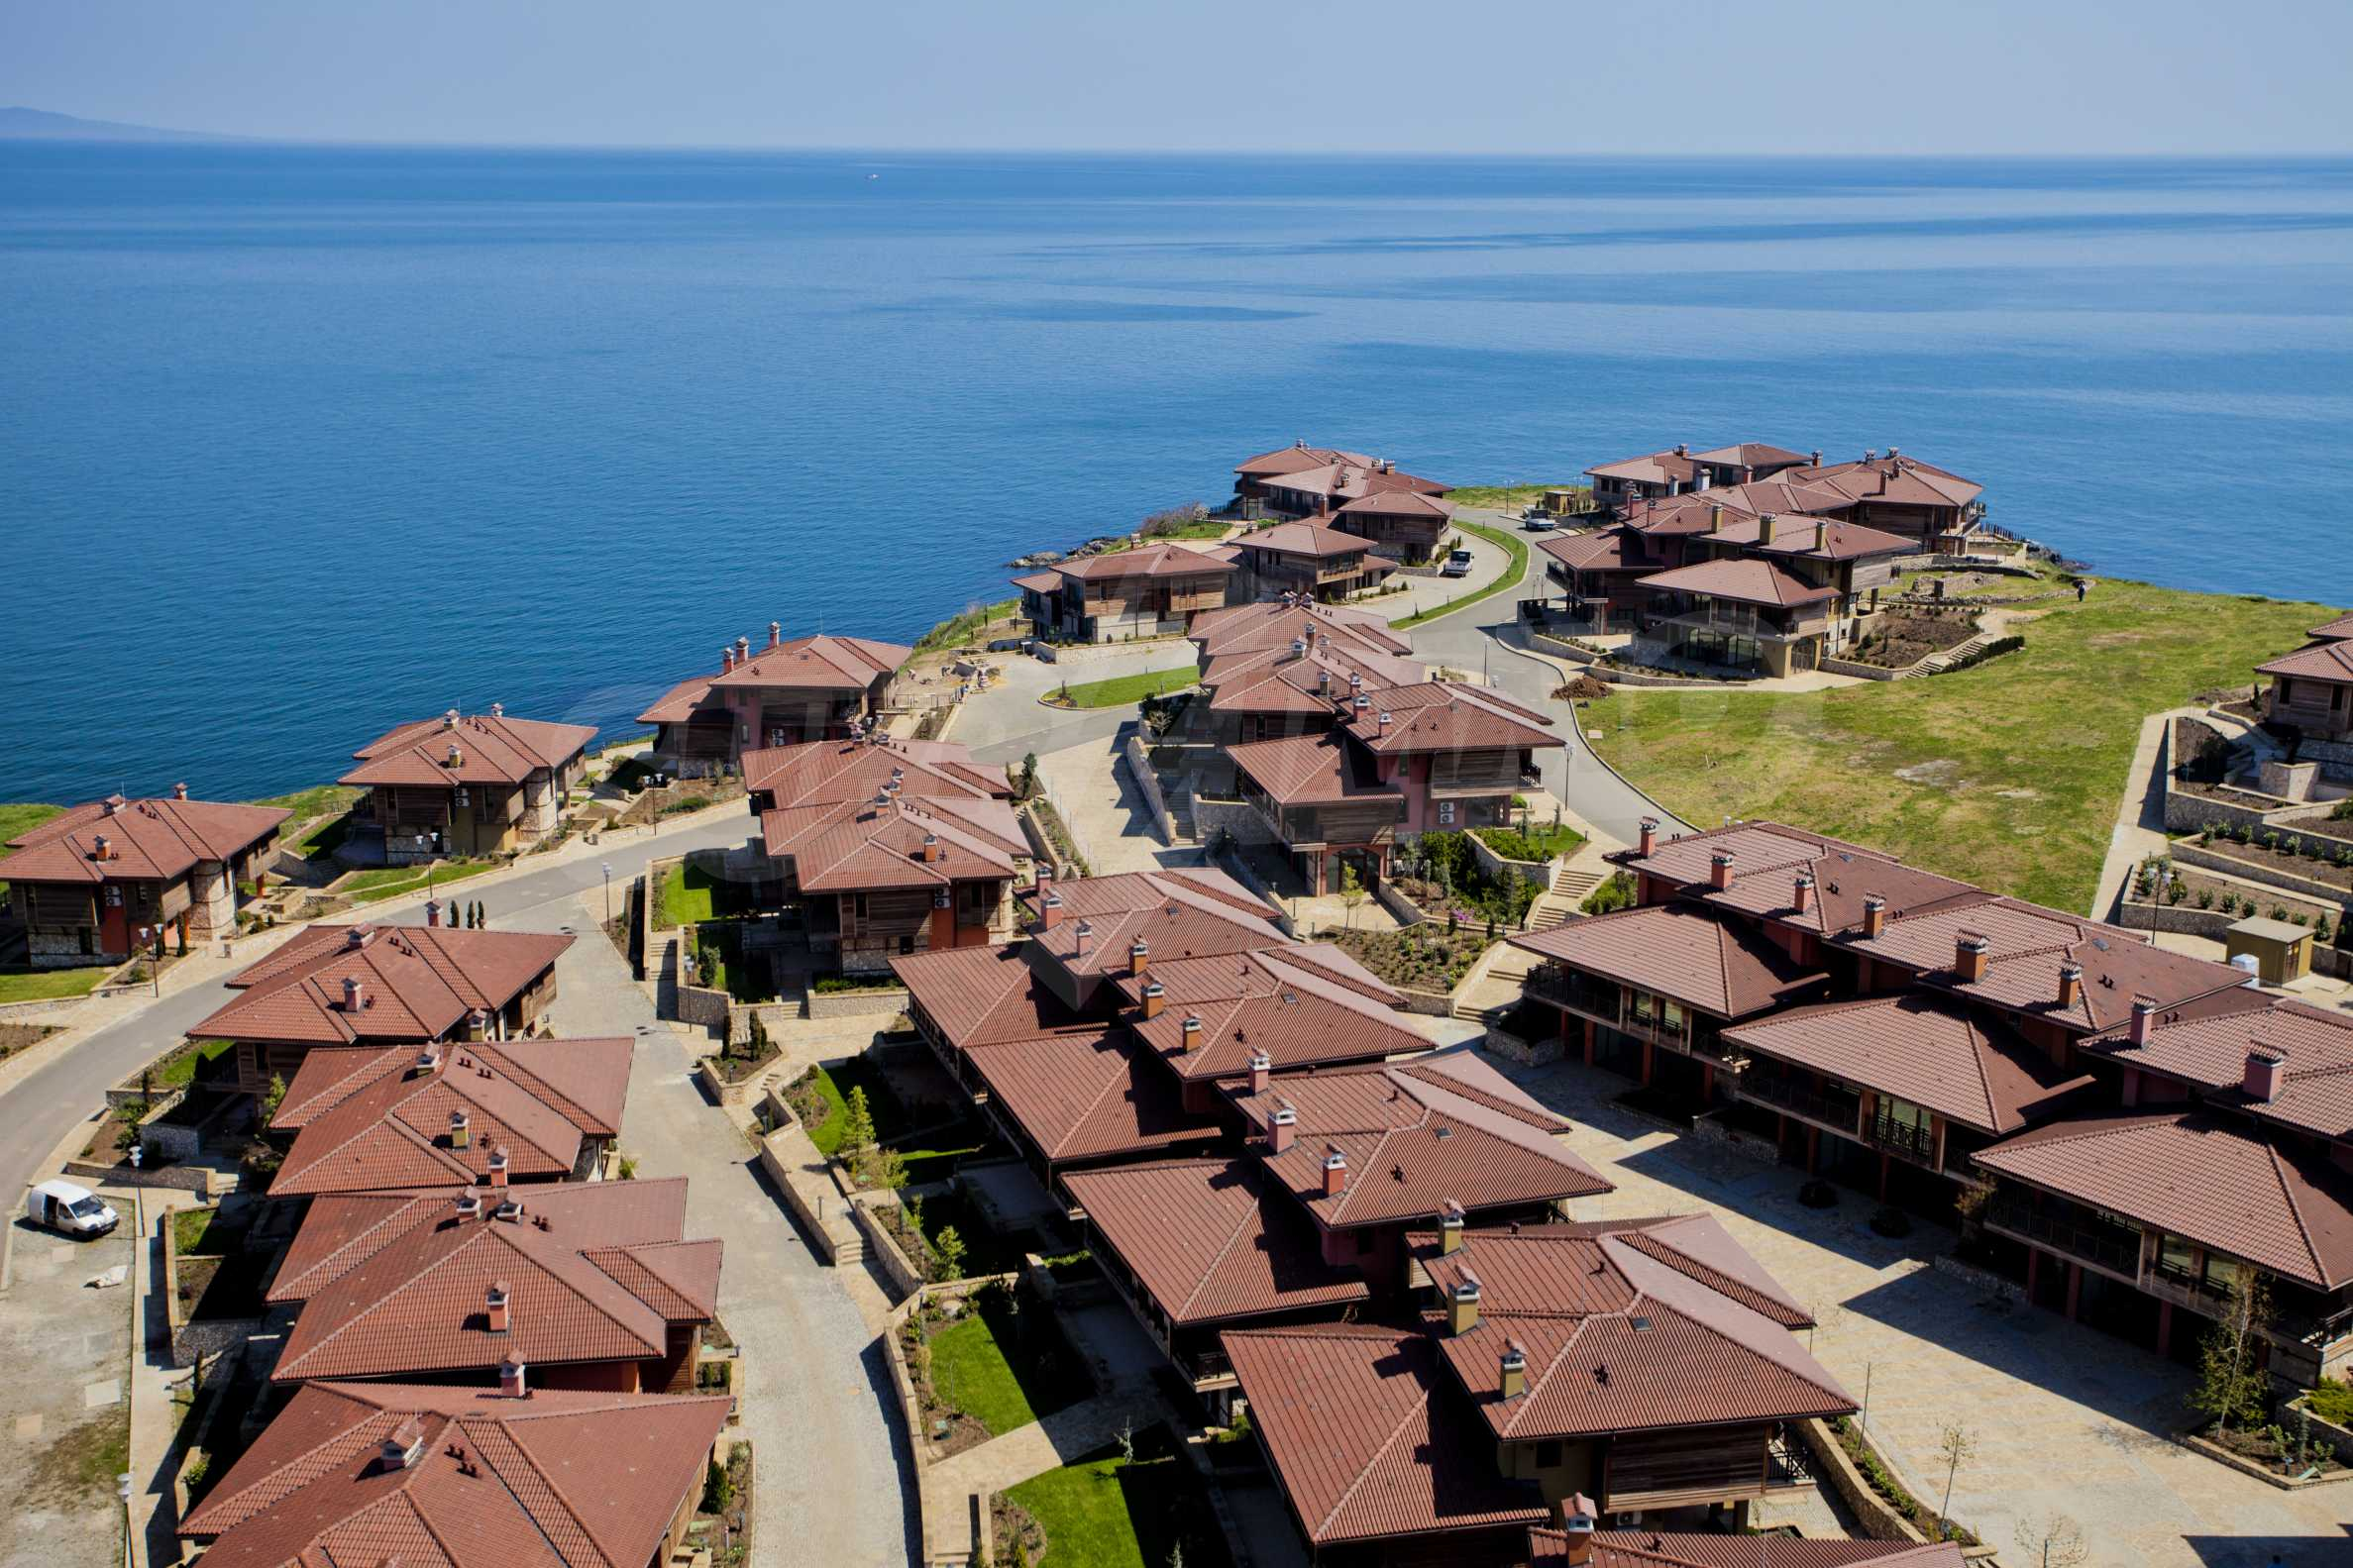 Sozopolis - unique coastal complex of townhouses and apartments near Sozopol 1